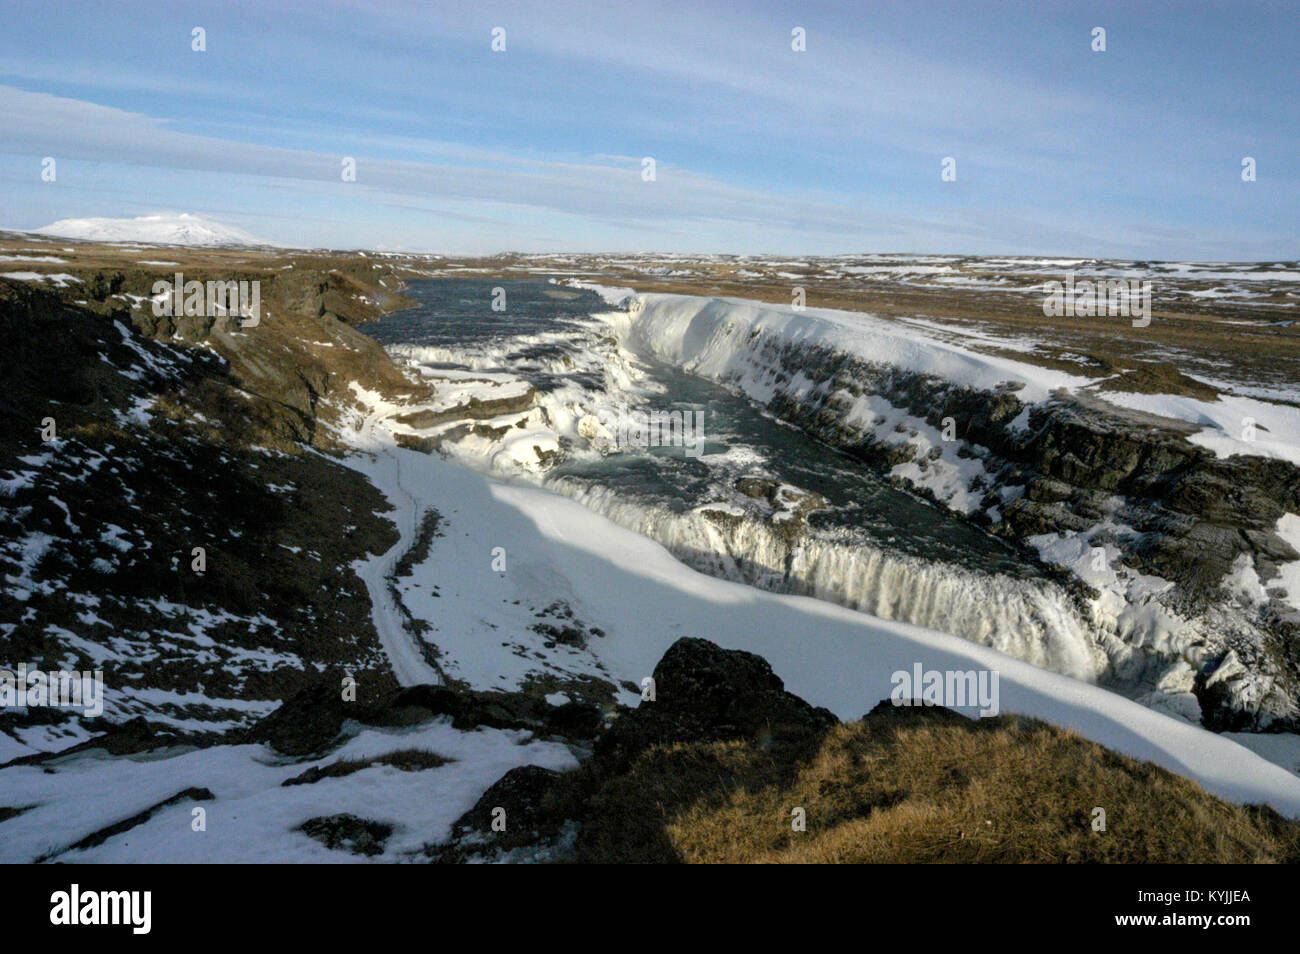 The snow-covered Gullfoss (Golden waterfalls) in southwest Iceland.   The falls has a drop of 32m into a narrow - Stock Image